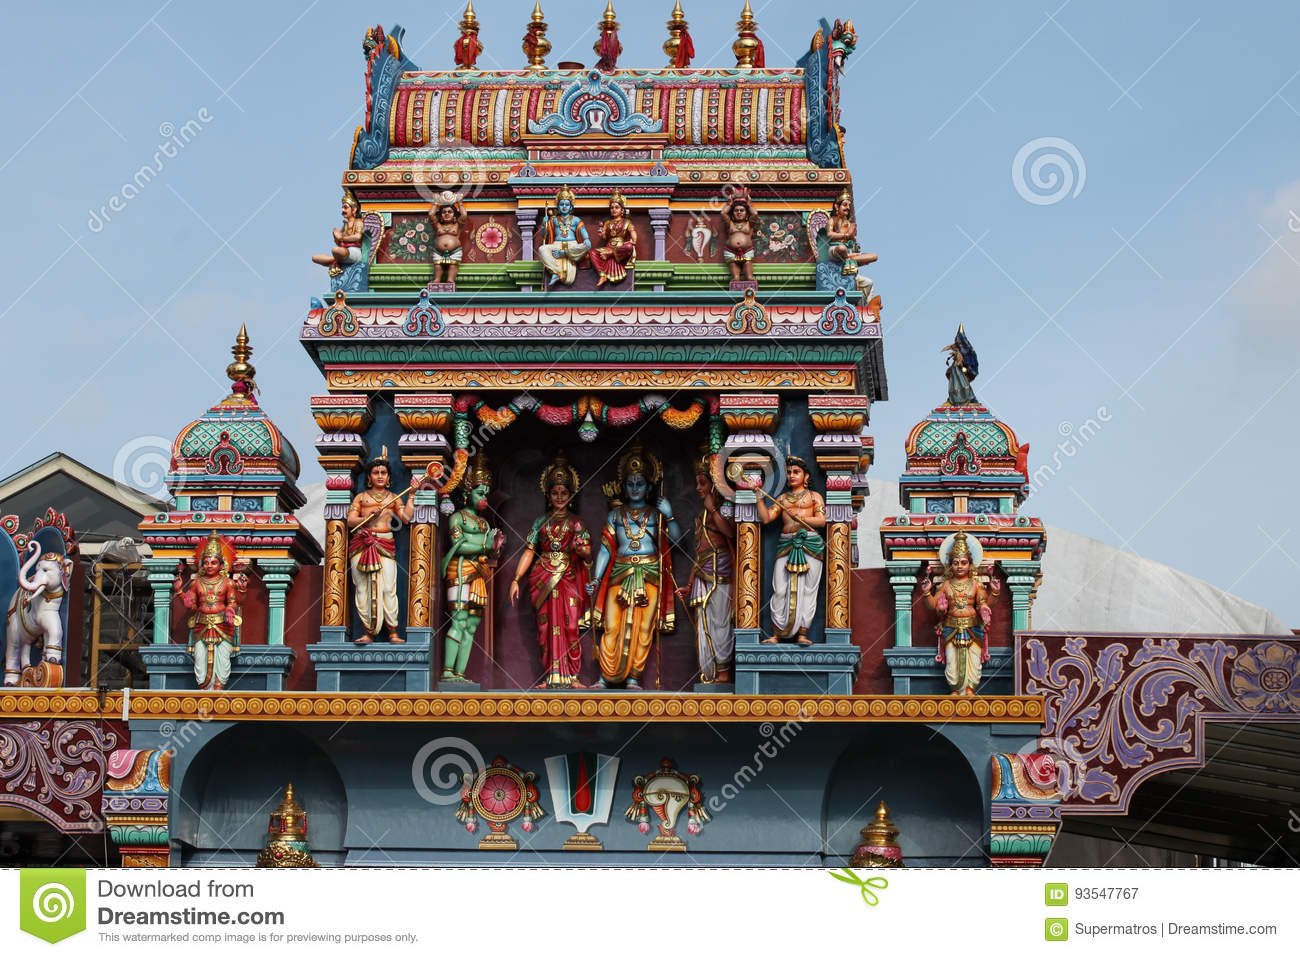 Sculpture Architecture And Symbols Of Hinduism And Buddhism Stock